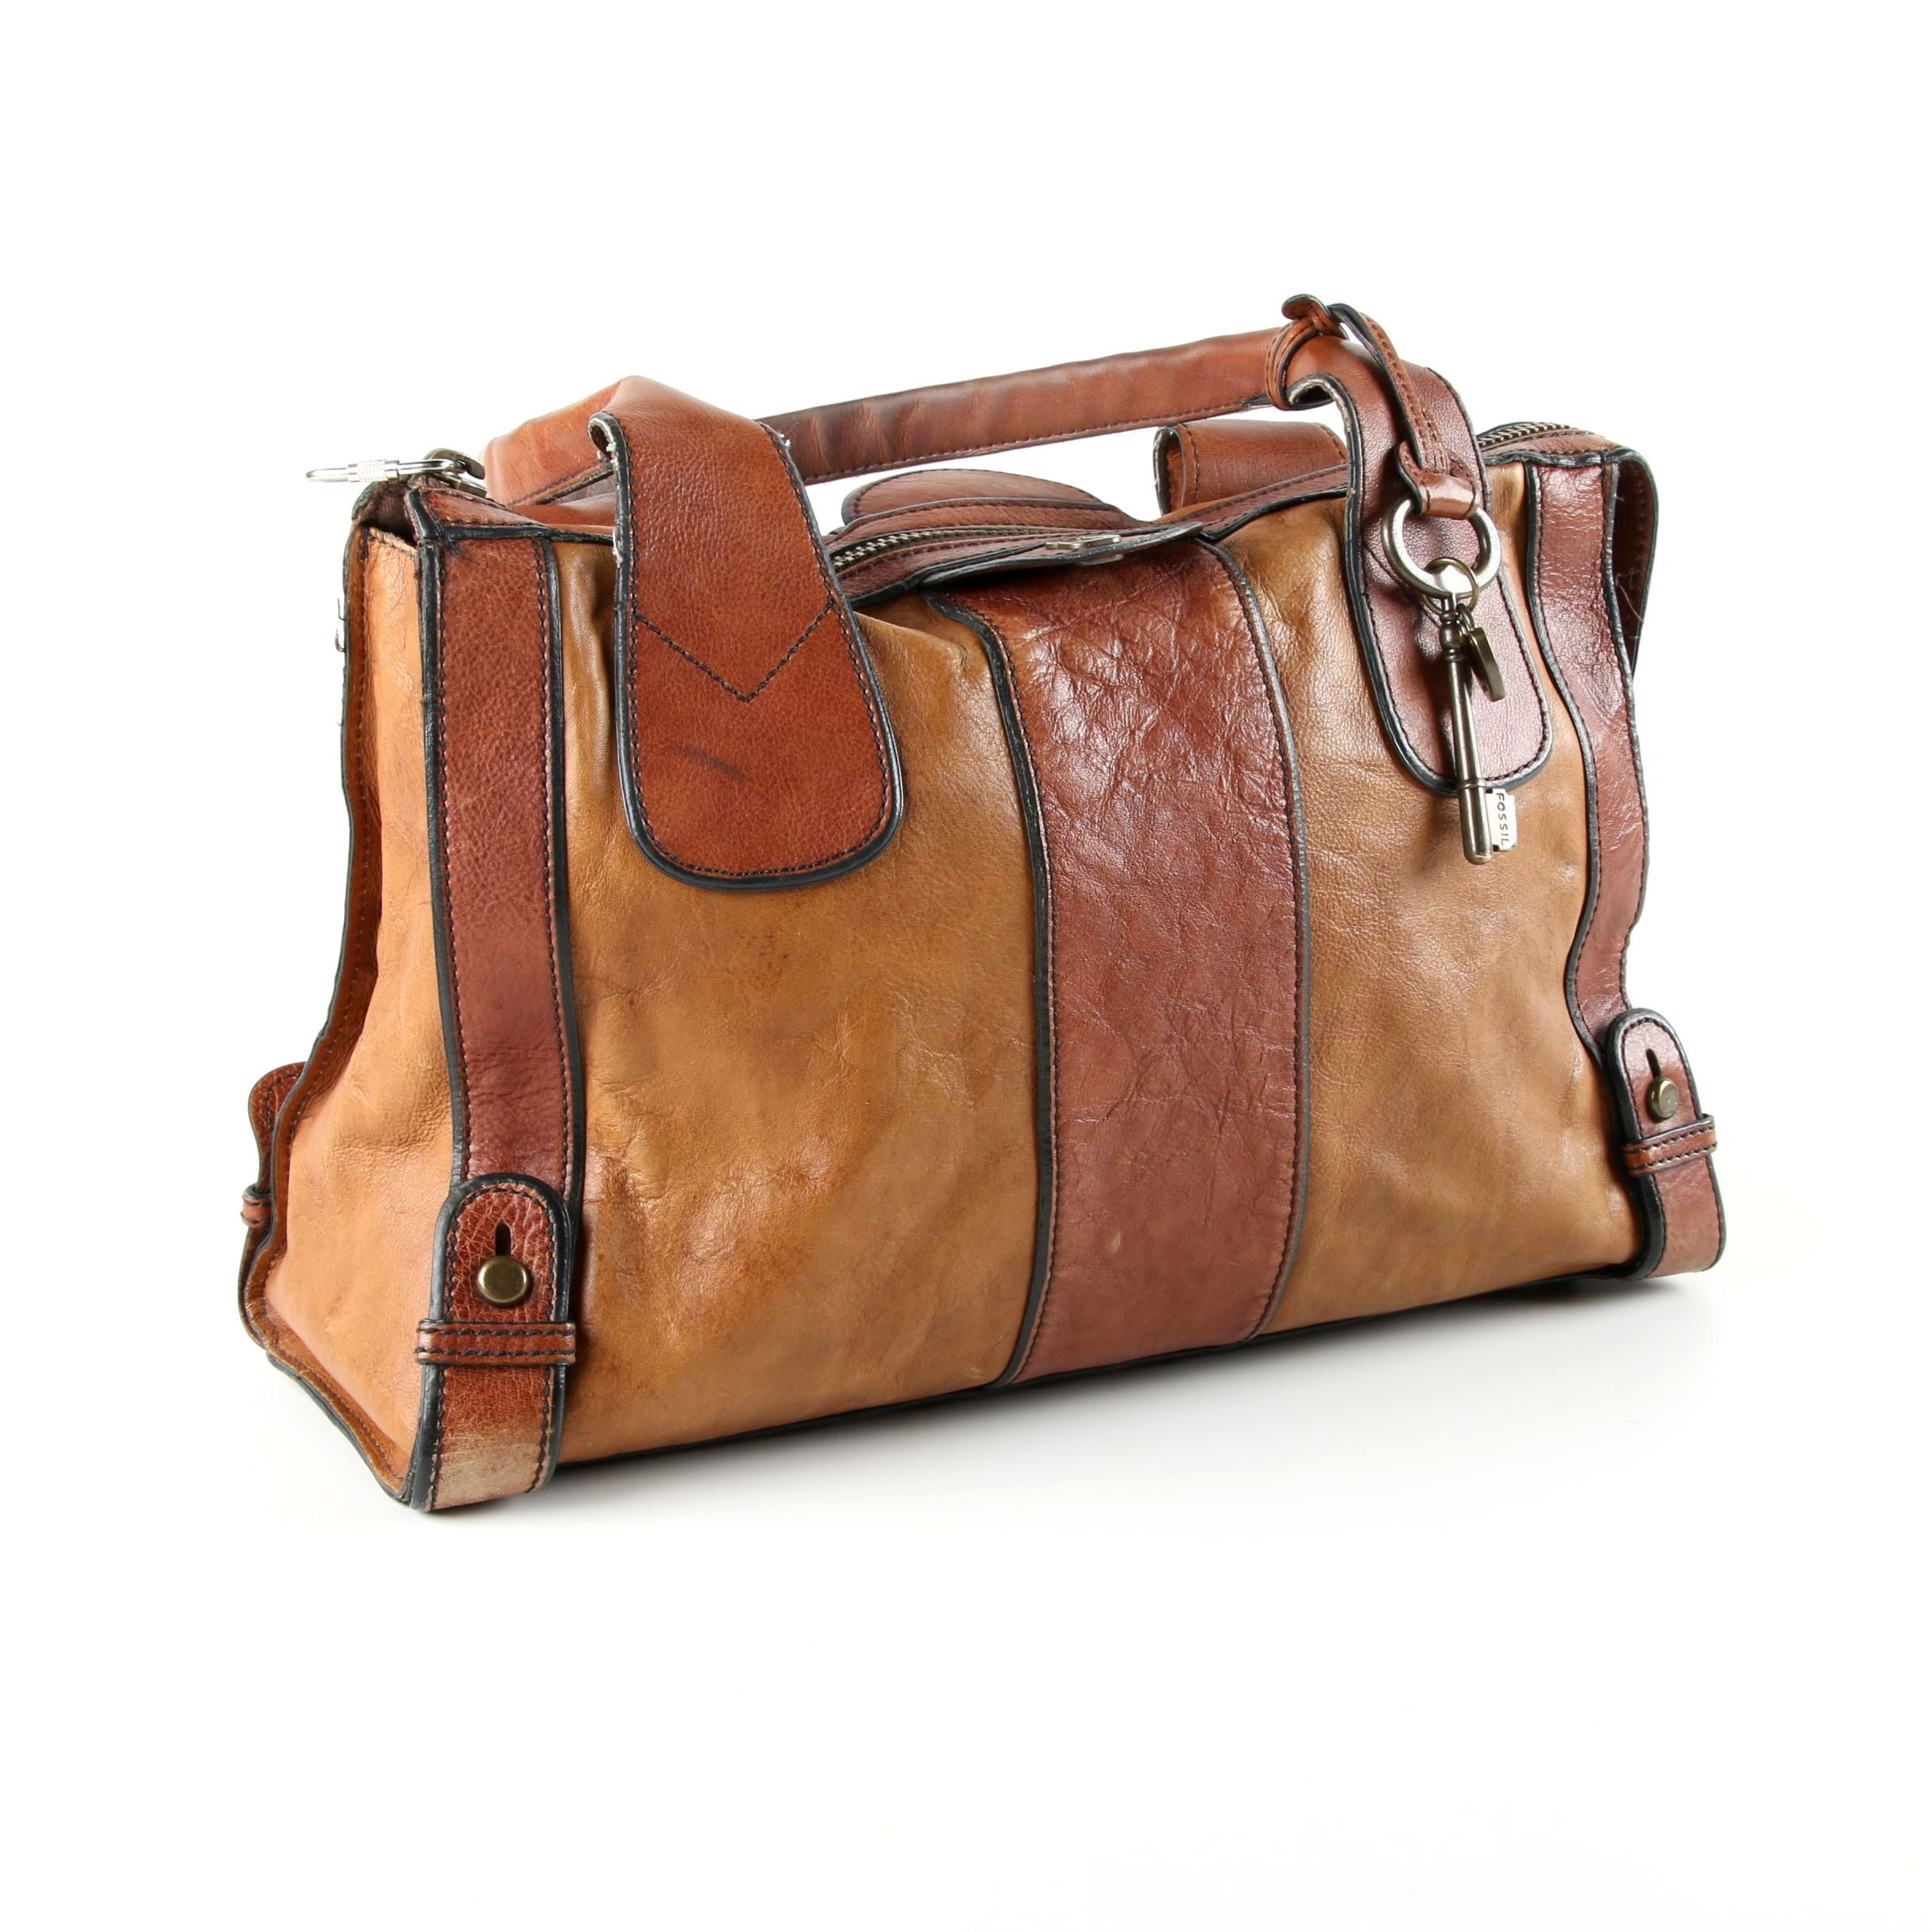 Fossil Two Tone Leather Weekender Satchel